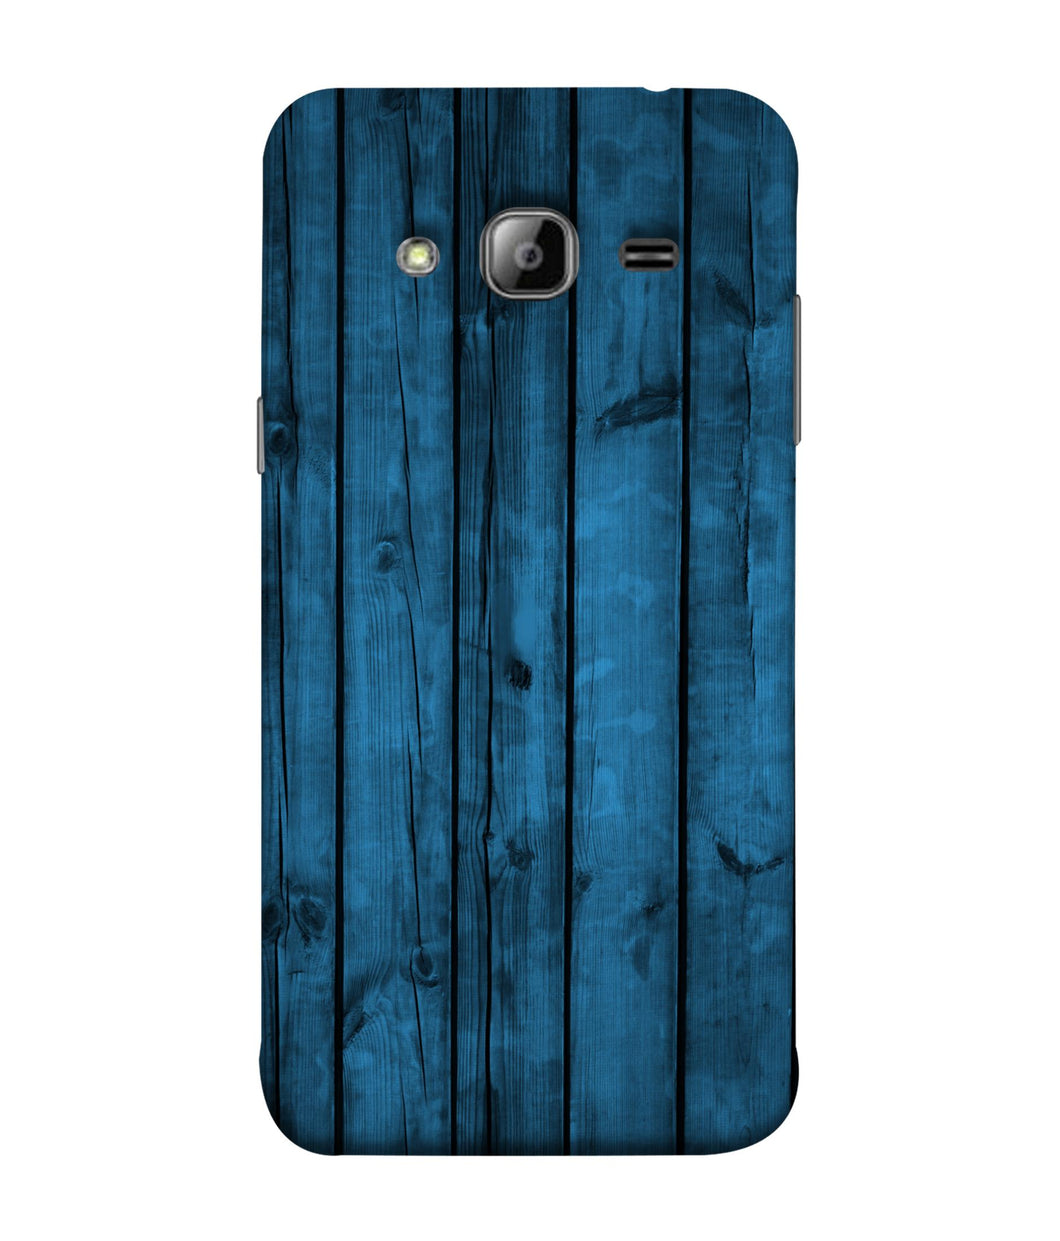 Samsung Galaxy ON7 Blue Woods Mobile cover